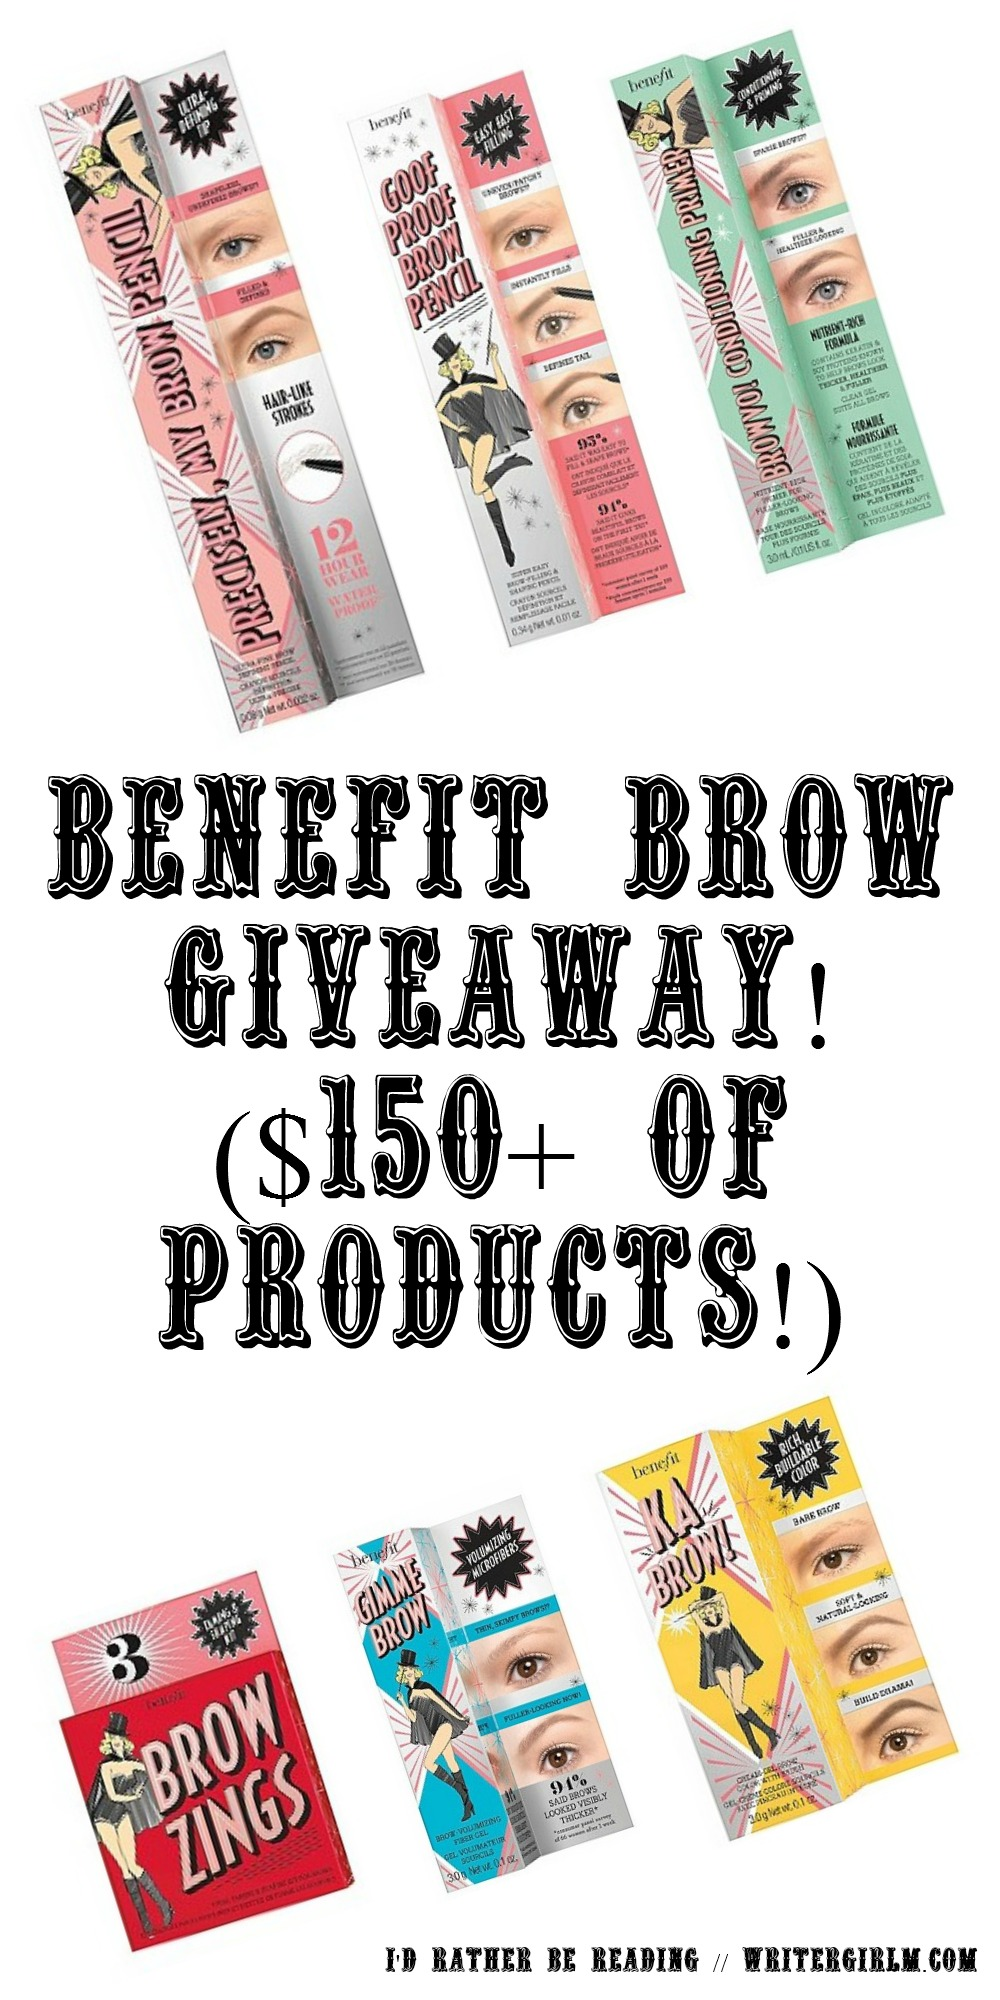 Giveaway time! One lucky reader will win $150+ of Benefit brow products from their new brow collection.